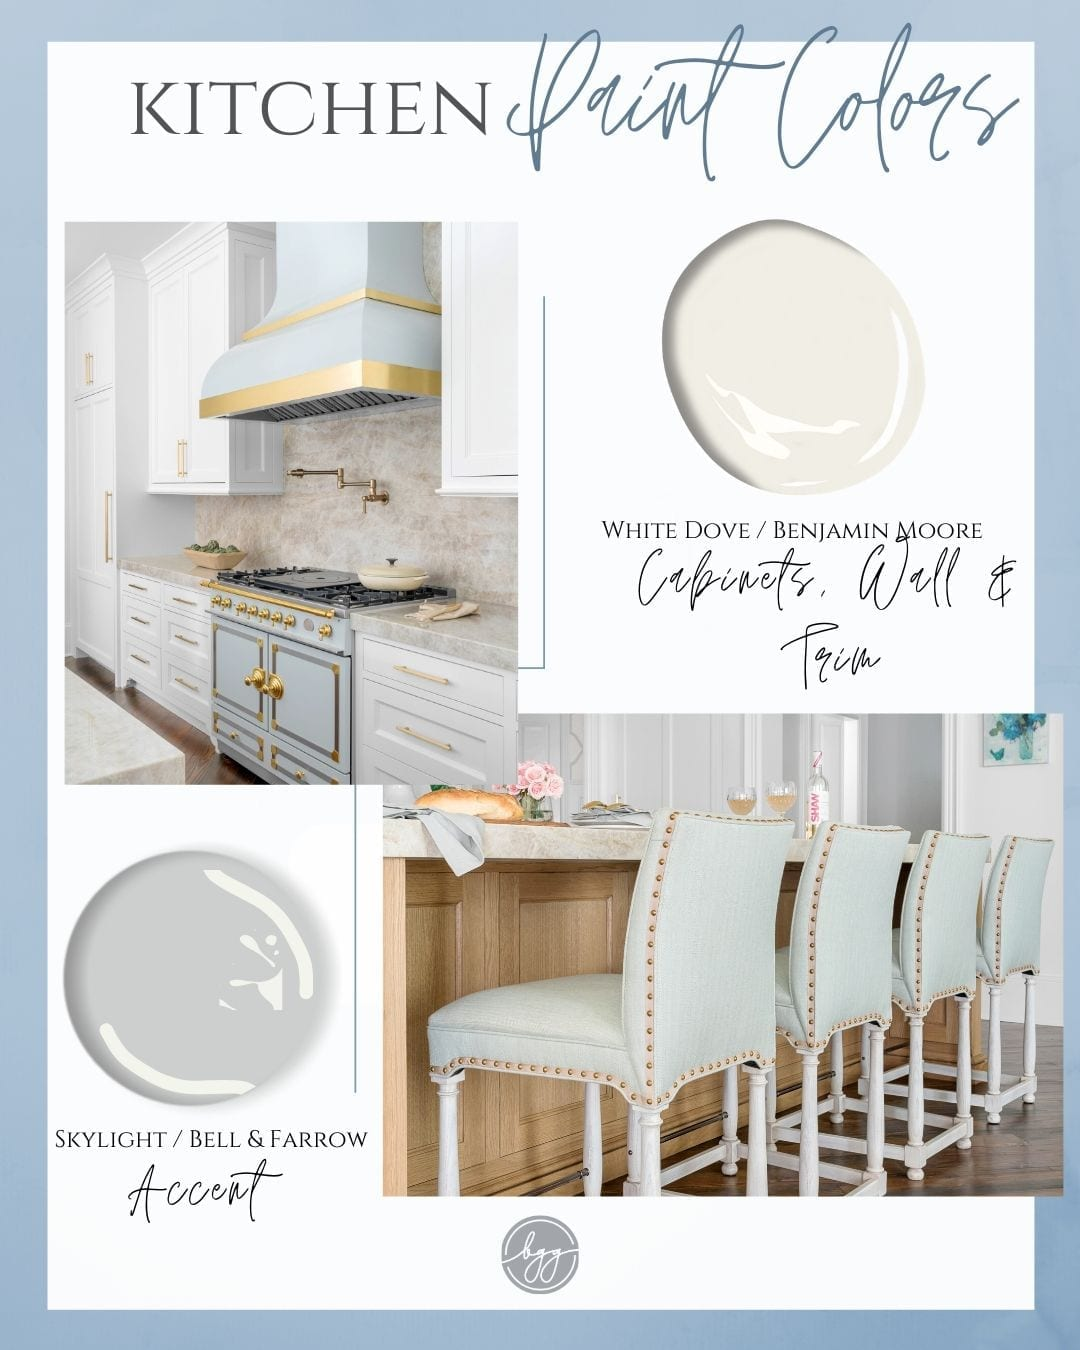 BlueGrayGal, the Atlanta home blogger Kelly Page, shares her kitchen paint colors with oak cabinets for her recently remodeled kitchen. A collection of greige paint colors for home decor.